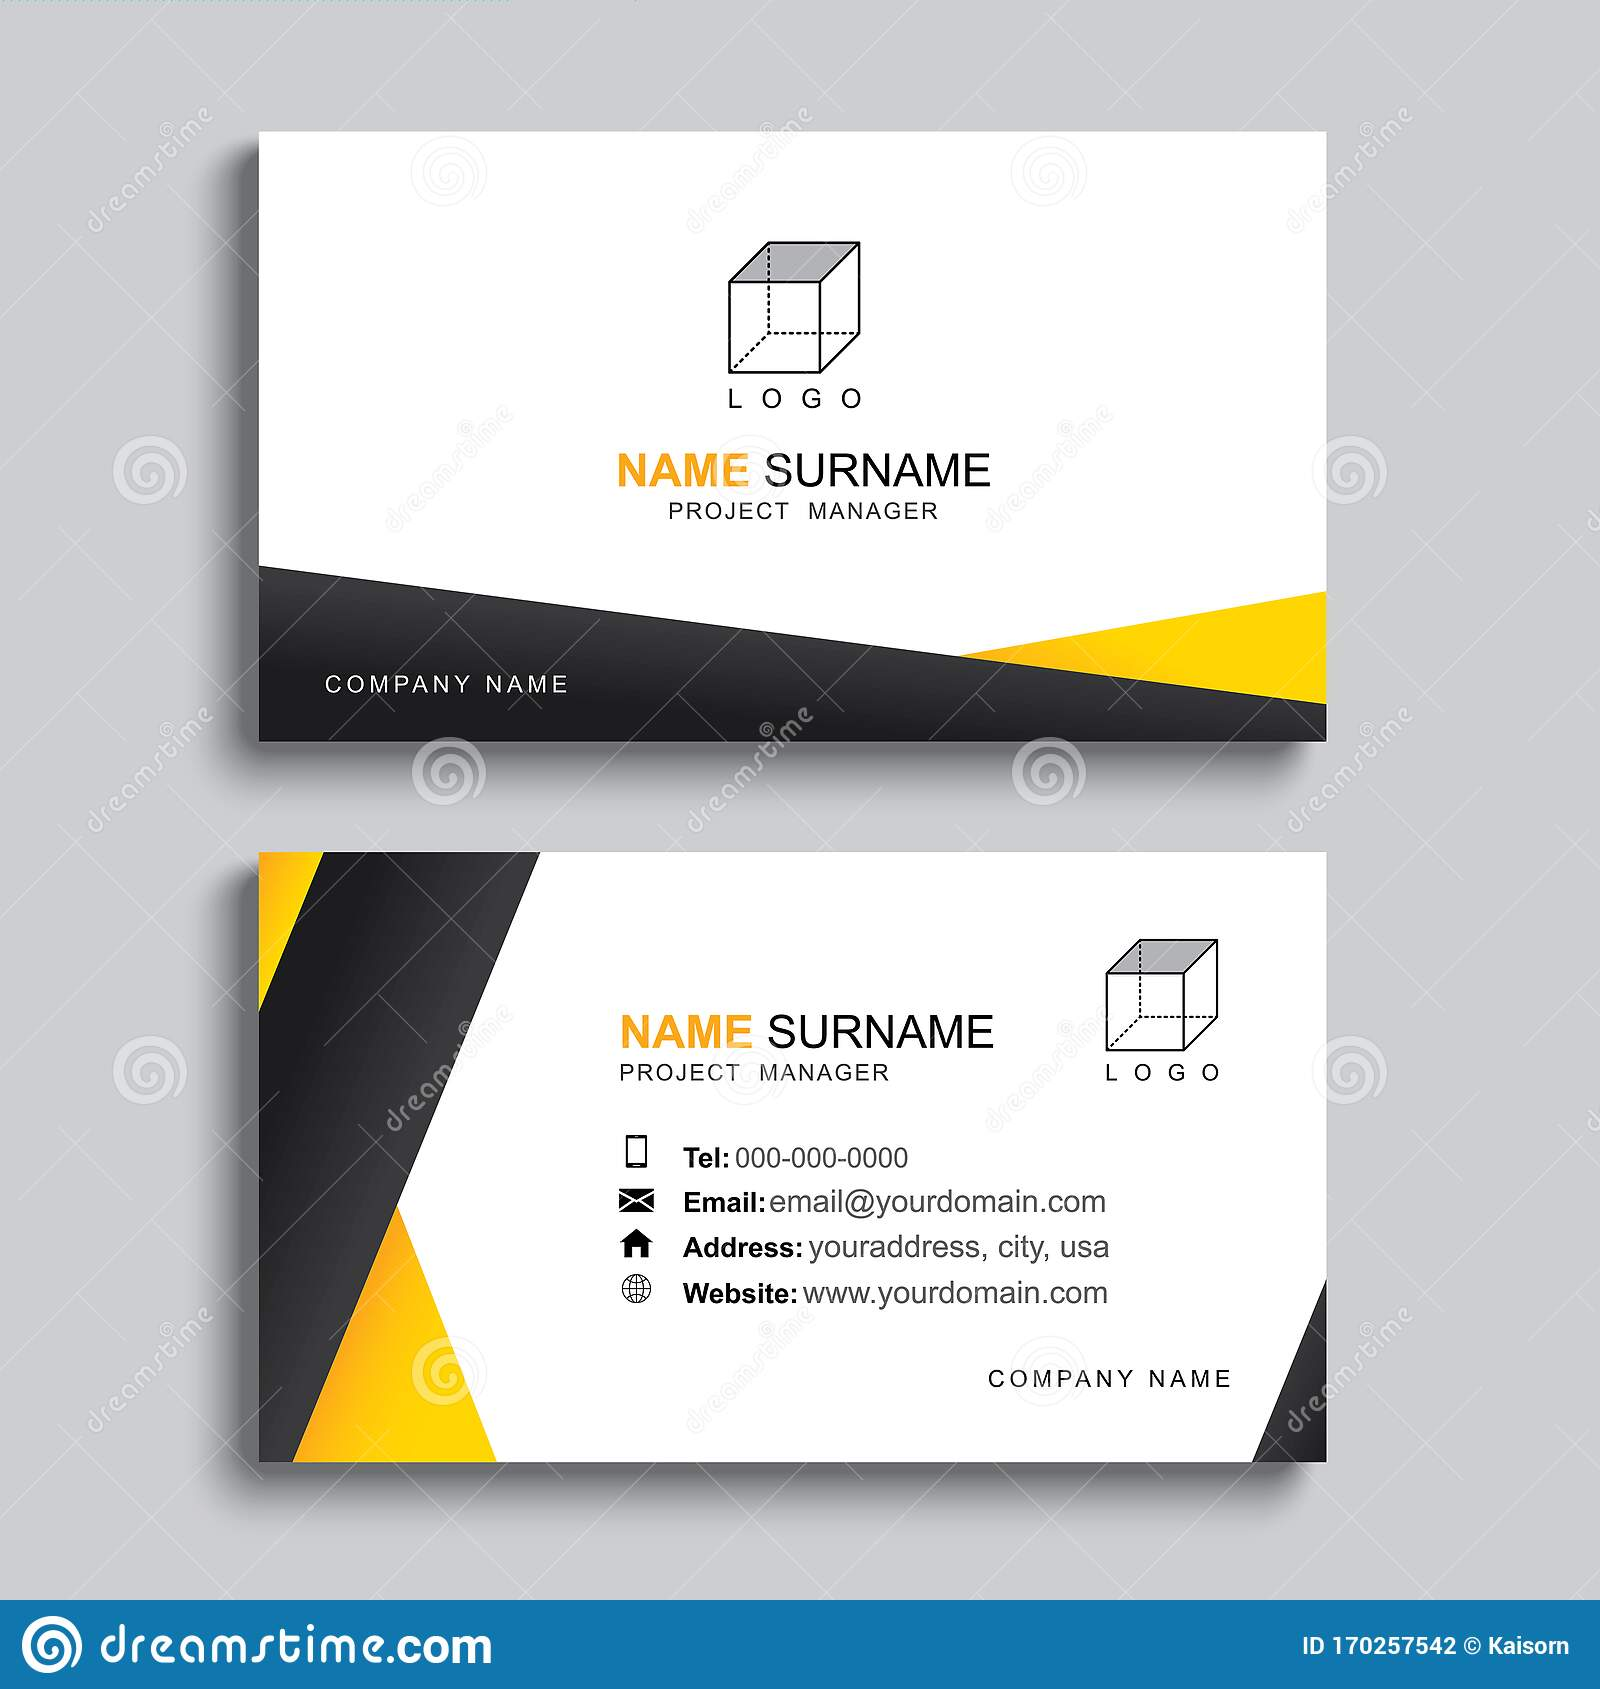 Minimal Business Card Print Template Design. Simple Clean Layout Within Template For Cards To Print Free